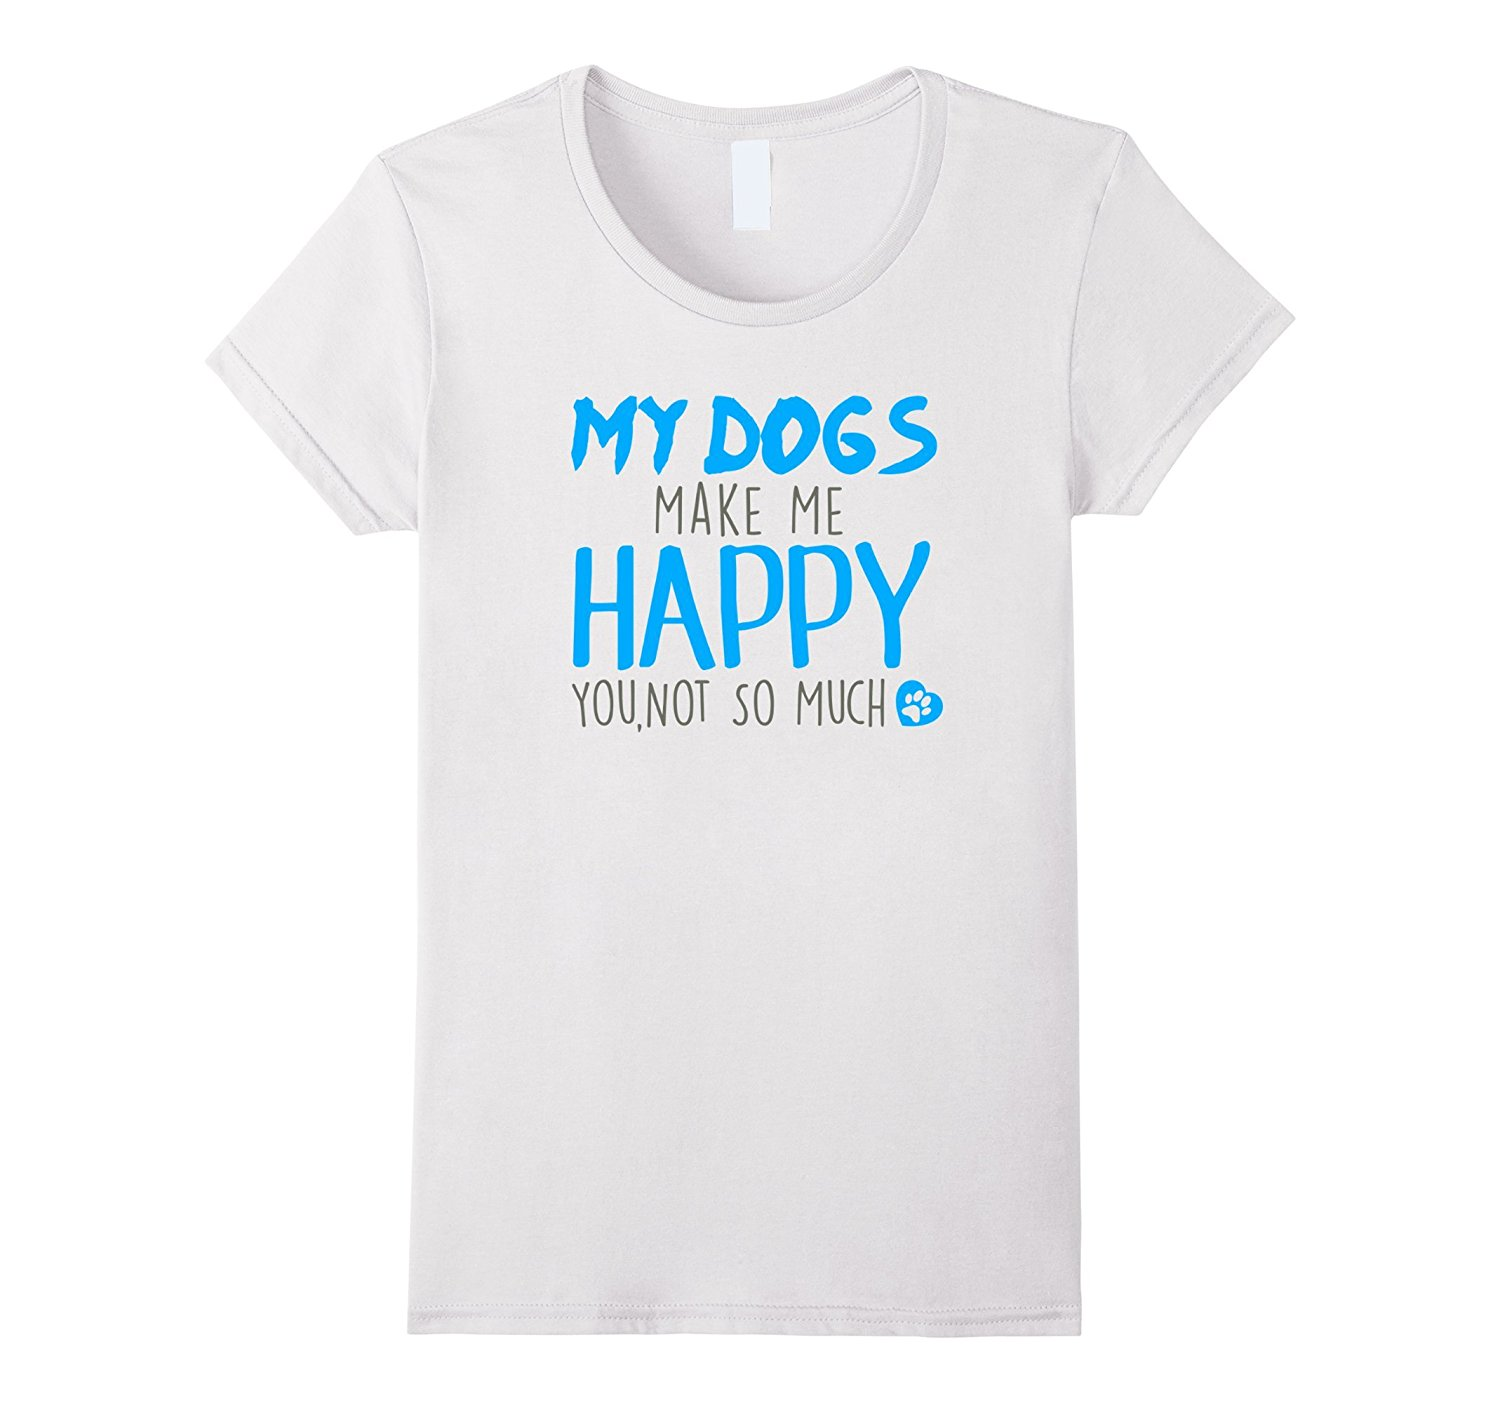 My Dogs Make Me Happy You, Not So Much T-Shirt Fashion T-Shirts Slim Fit O-Neck Top Tee New Fashion Cool Casual T Shirts